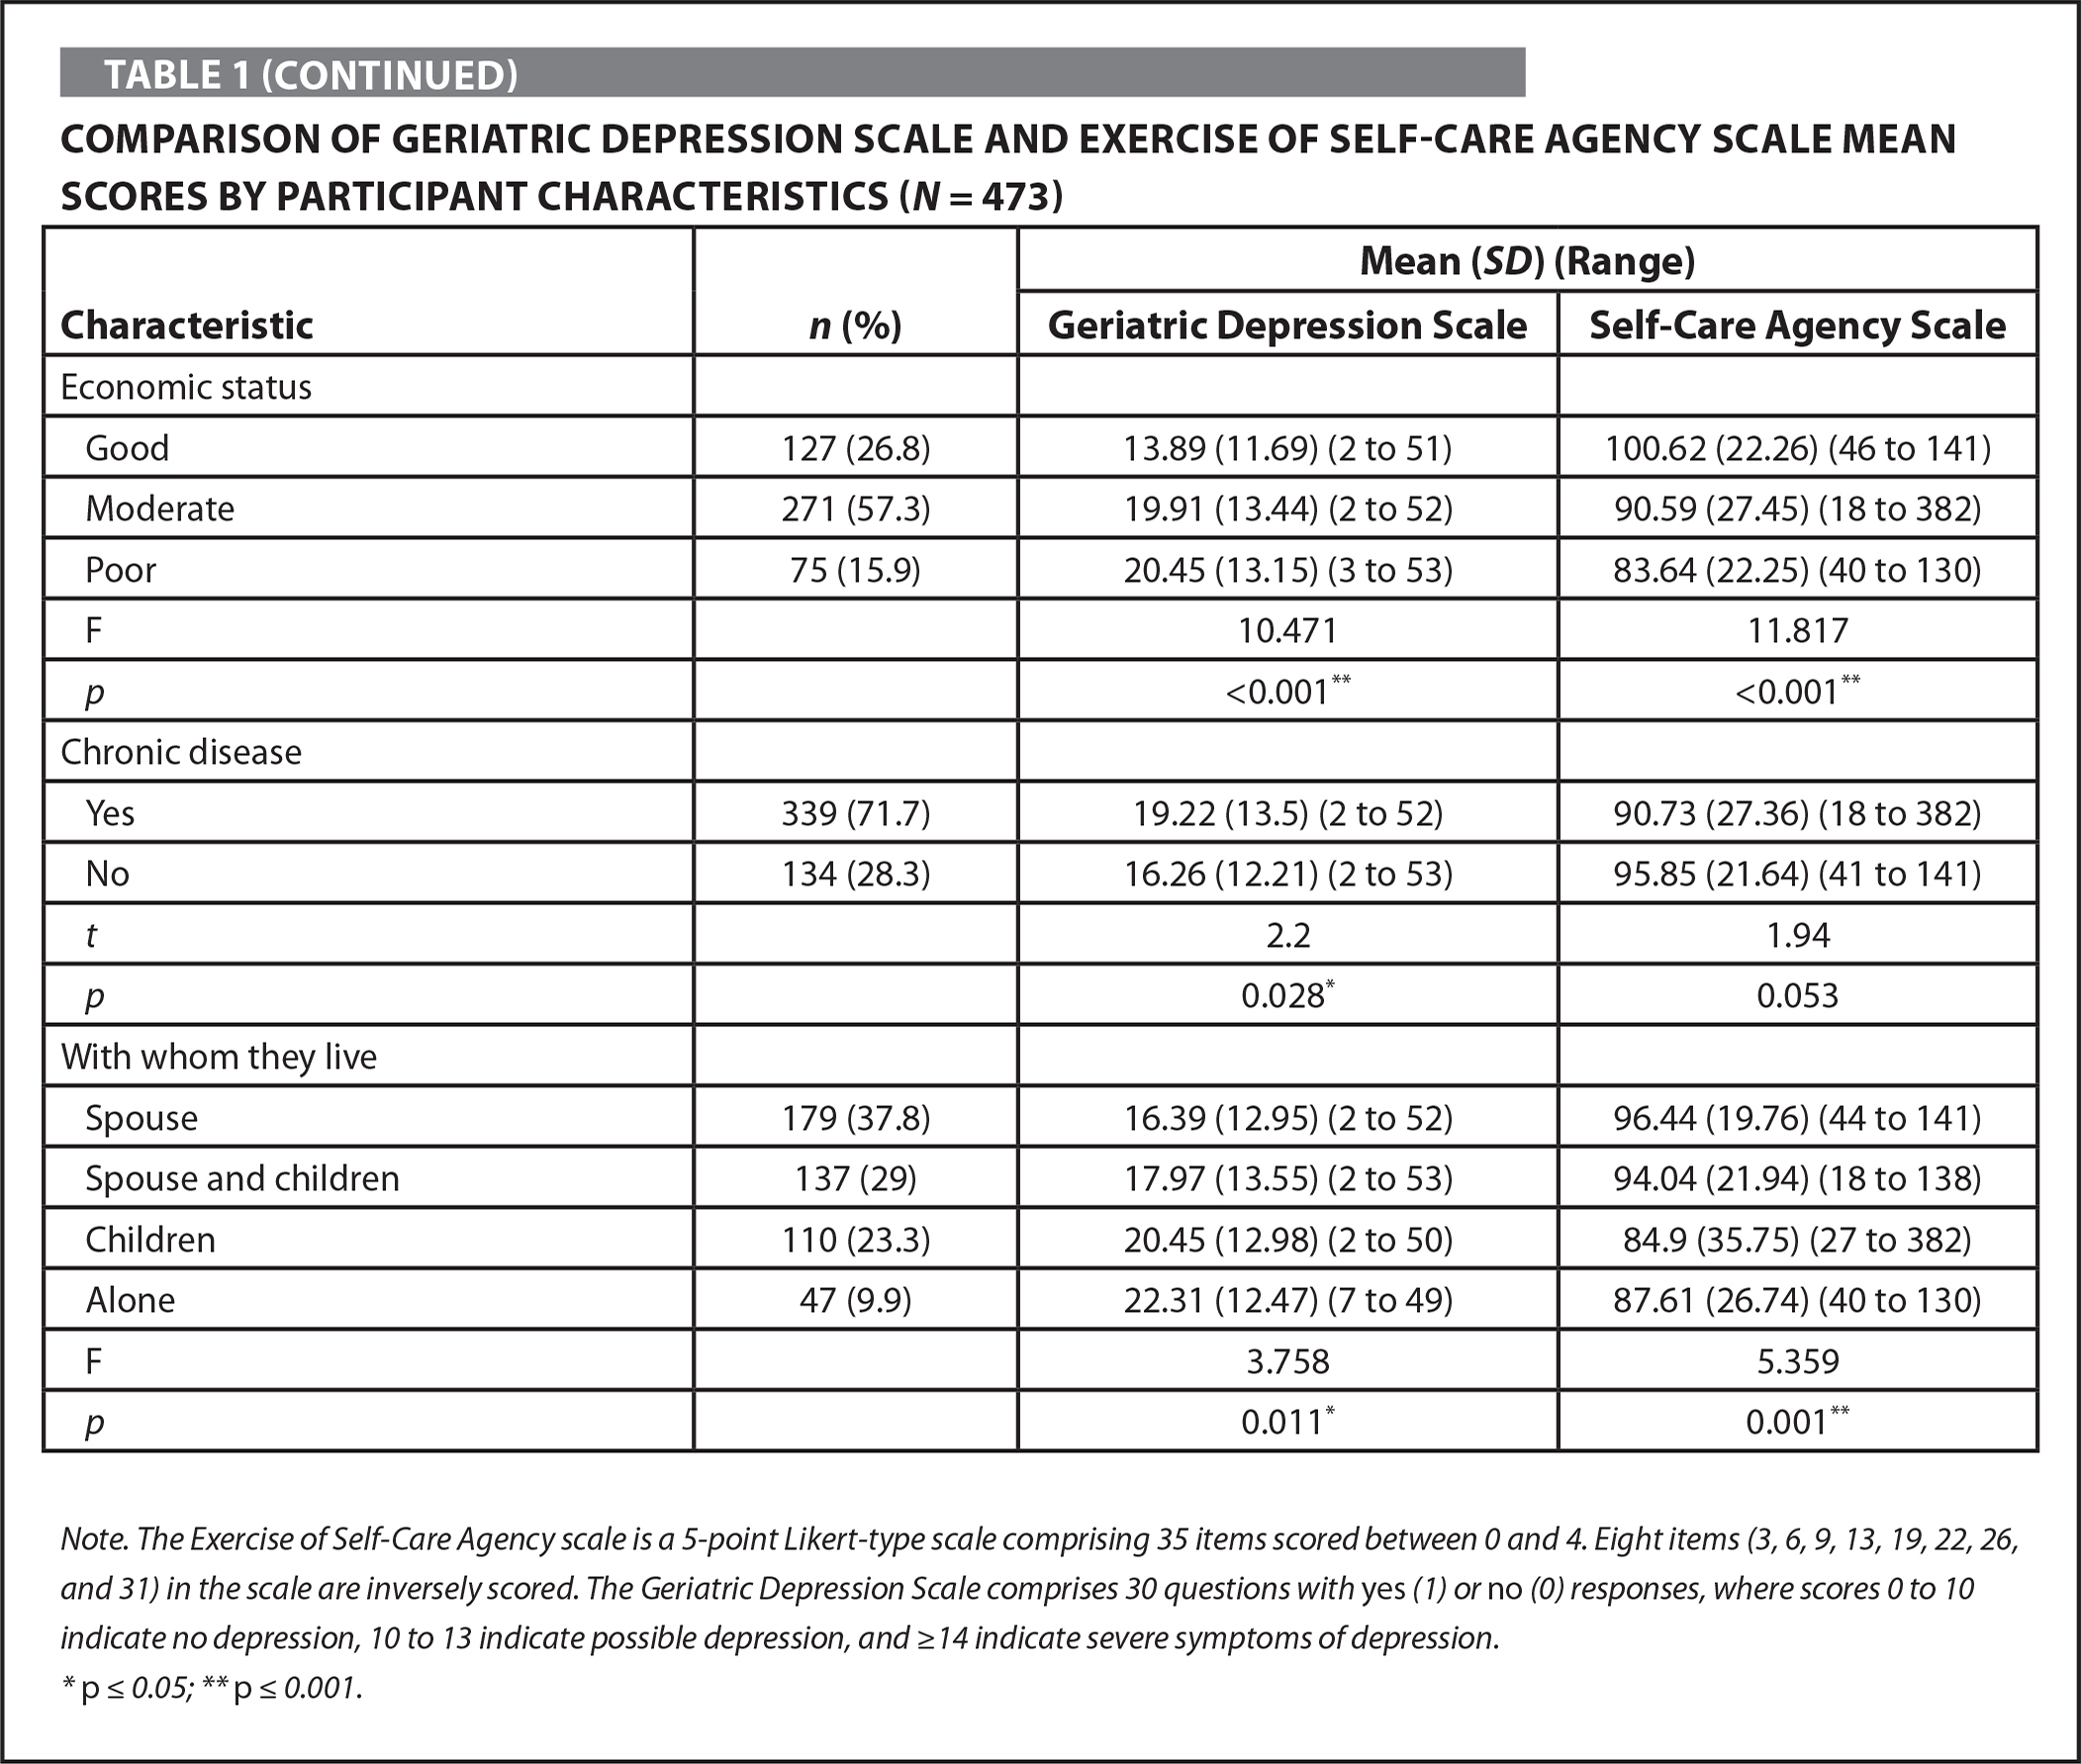 Comparison of Geriatric Depression Scale and Exercise of Self-Care Agency Scale Mean Scores by Participant Characteristics (N = 473)